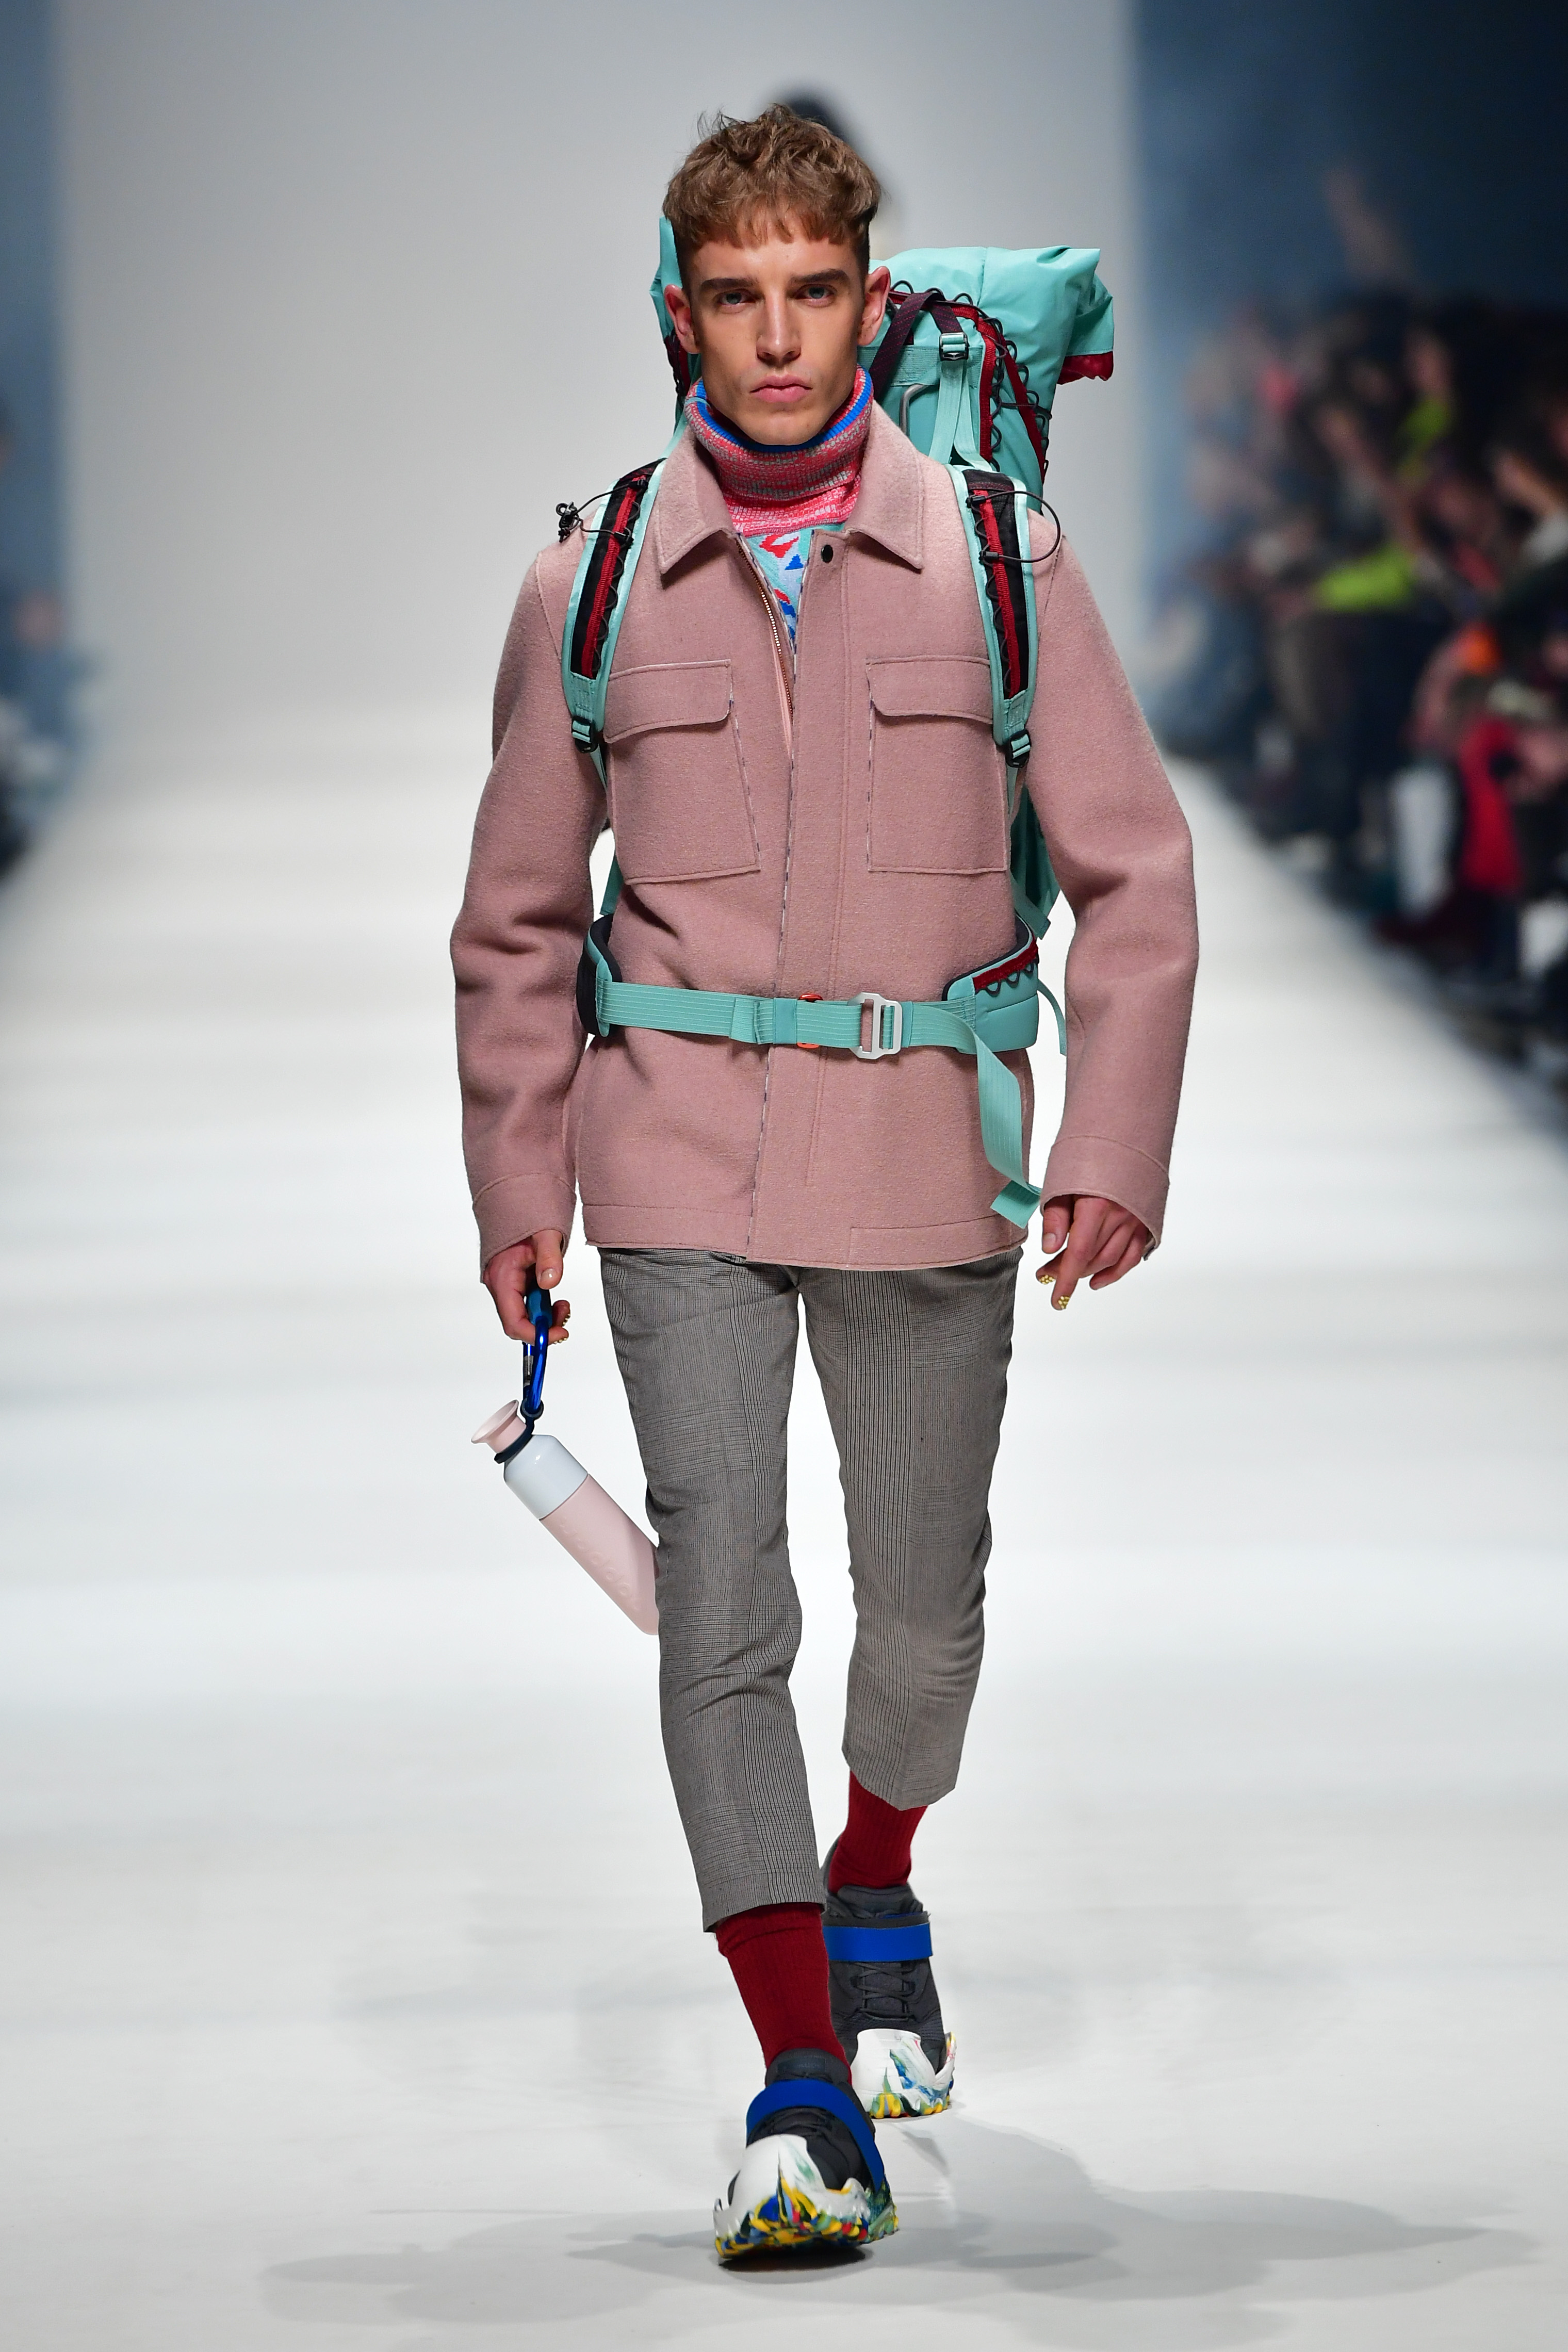 BERLIN, GERMANY - JANUARY 14: A model wearing a jacket by Langer Chen, pullover by Friedrich Dippmann, trousers by Wunderwerk, water bottle by Dopper, backpack by Klaettermusen, shoes by Vaude and shoe soles & straps by For Ever walks the runway at the Neonyt show during Berlin Fashion Week Autumn/Winter 2020 at Kraftwerk Mitte on January 14, 2020 in Berlin, Germany. (Photo by Alexander Koerner/Getty Images for MBFW)